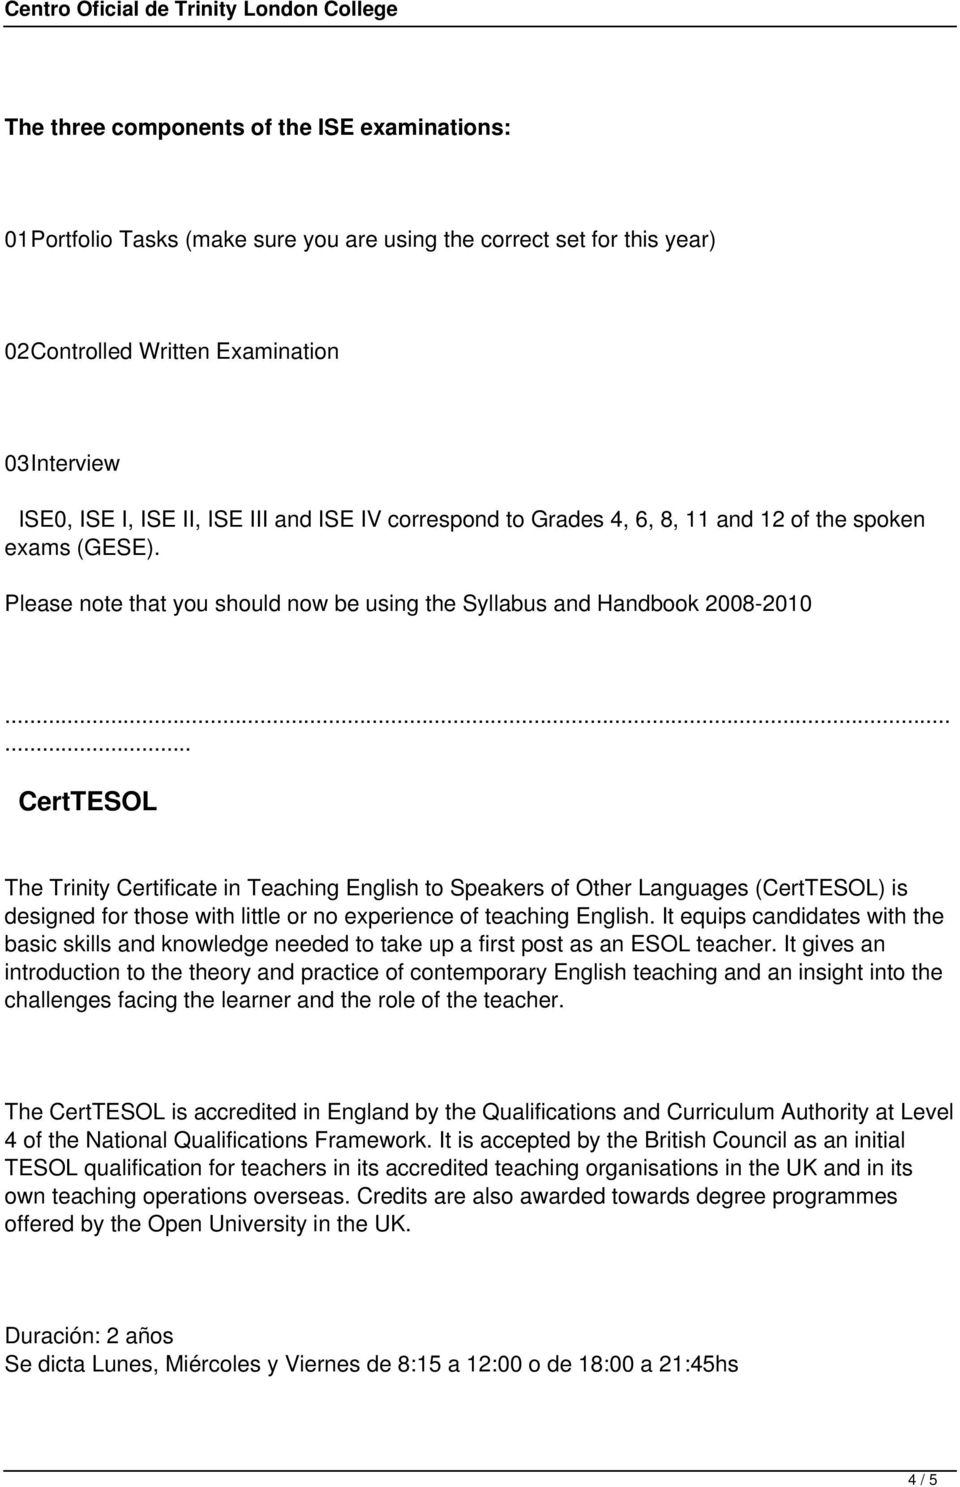 Please note that you should now be using the Syllabus and Handbook 2008-2010 CertTESOL The Trinity Certificate in Teaching English to Speakers of Other Languages (CertTESOL) is designed for those